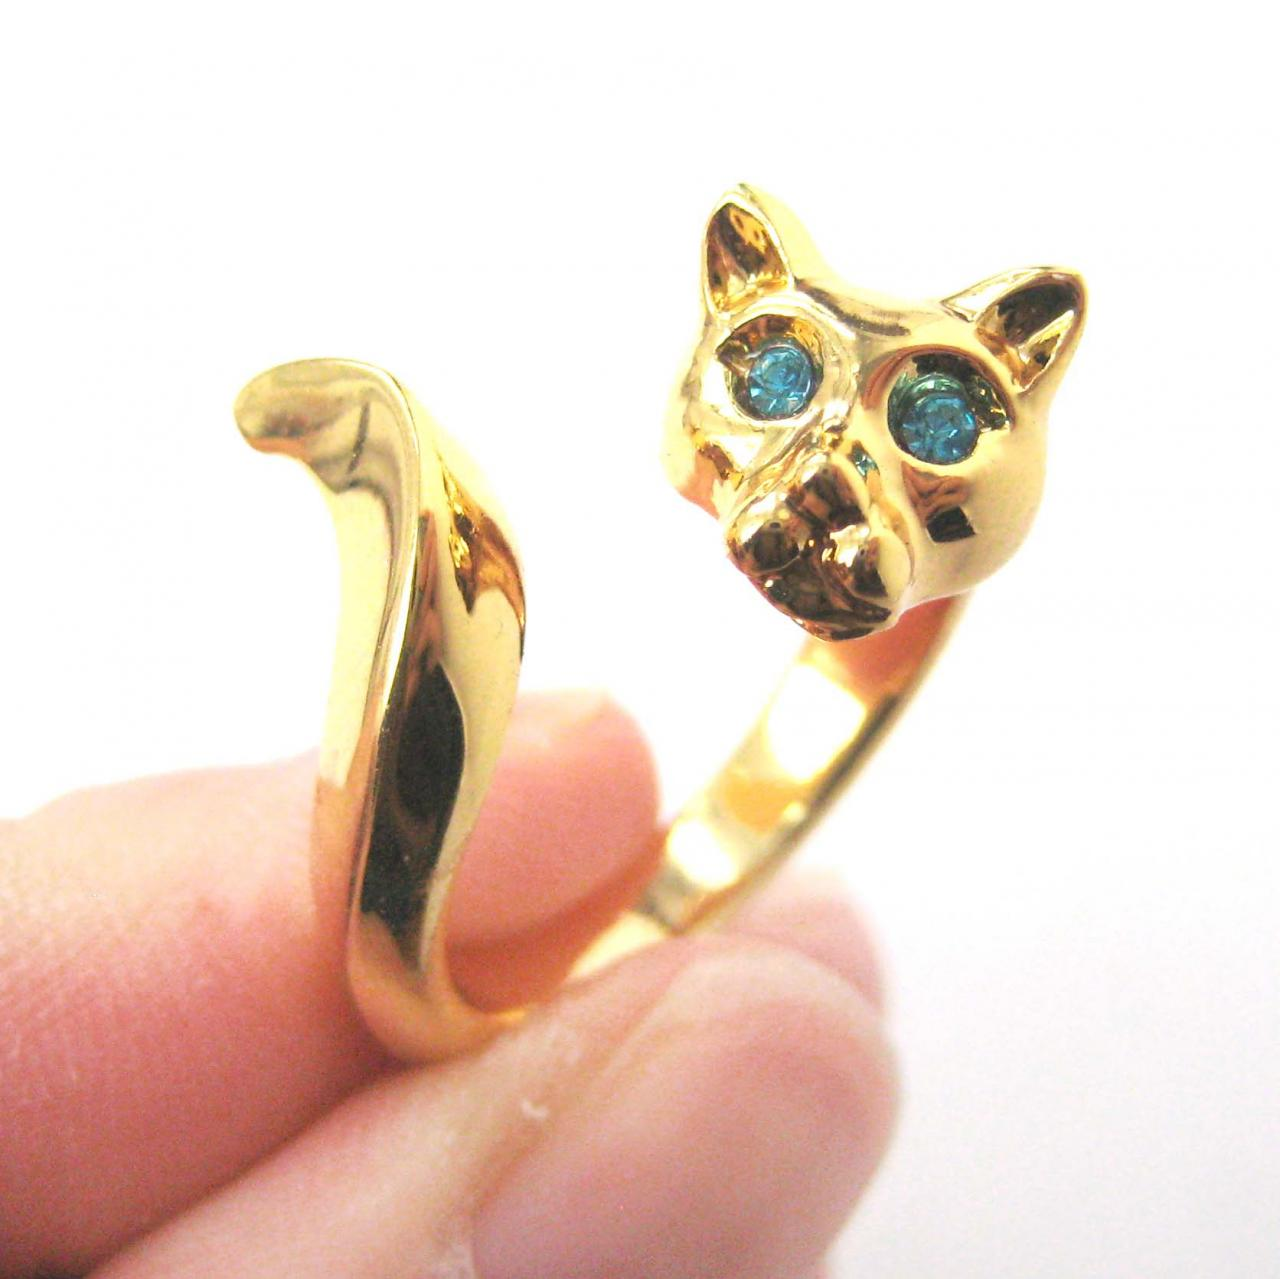 KITTY CAT ANIMAL WRAP RING IN SHINY GOLD WITH RHINESTONE EYES | US SIZES 4 TO 8